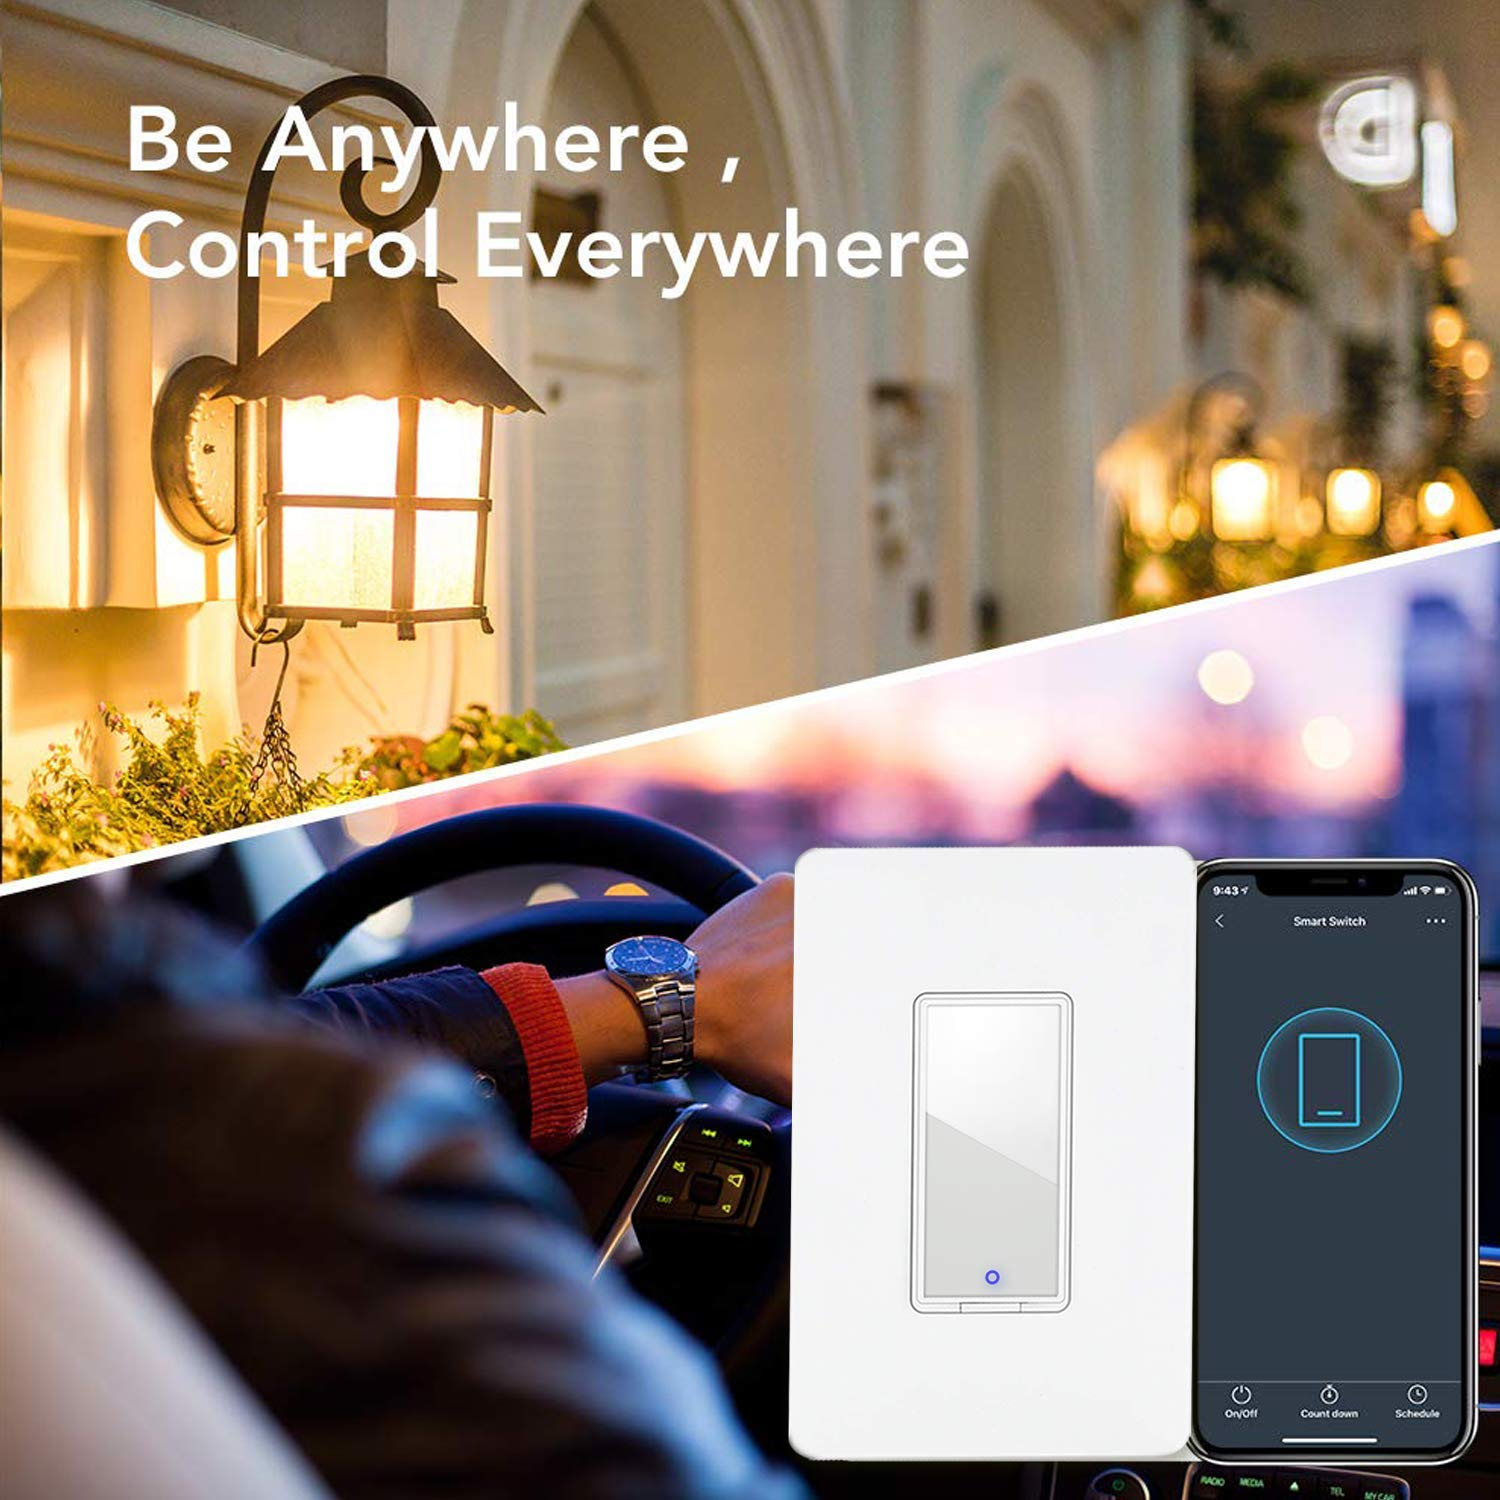 Smart light switch by Lumiman, Compatible with Alexa, Google Assistant, Single-Pole, Schedule, Remote Control Neutral Wire Required, Easy Installation, ETL Listed (2Pack)